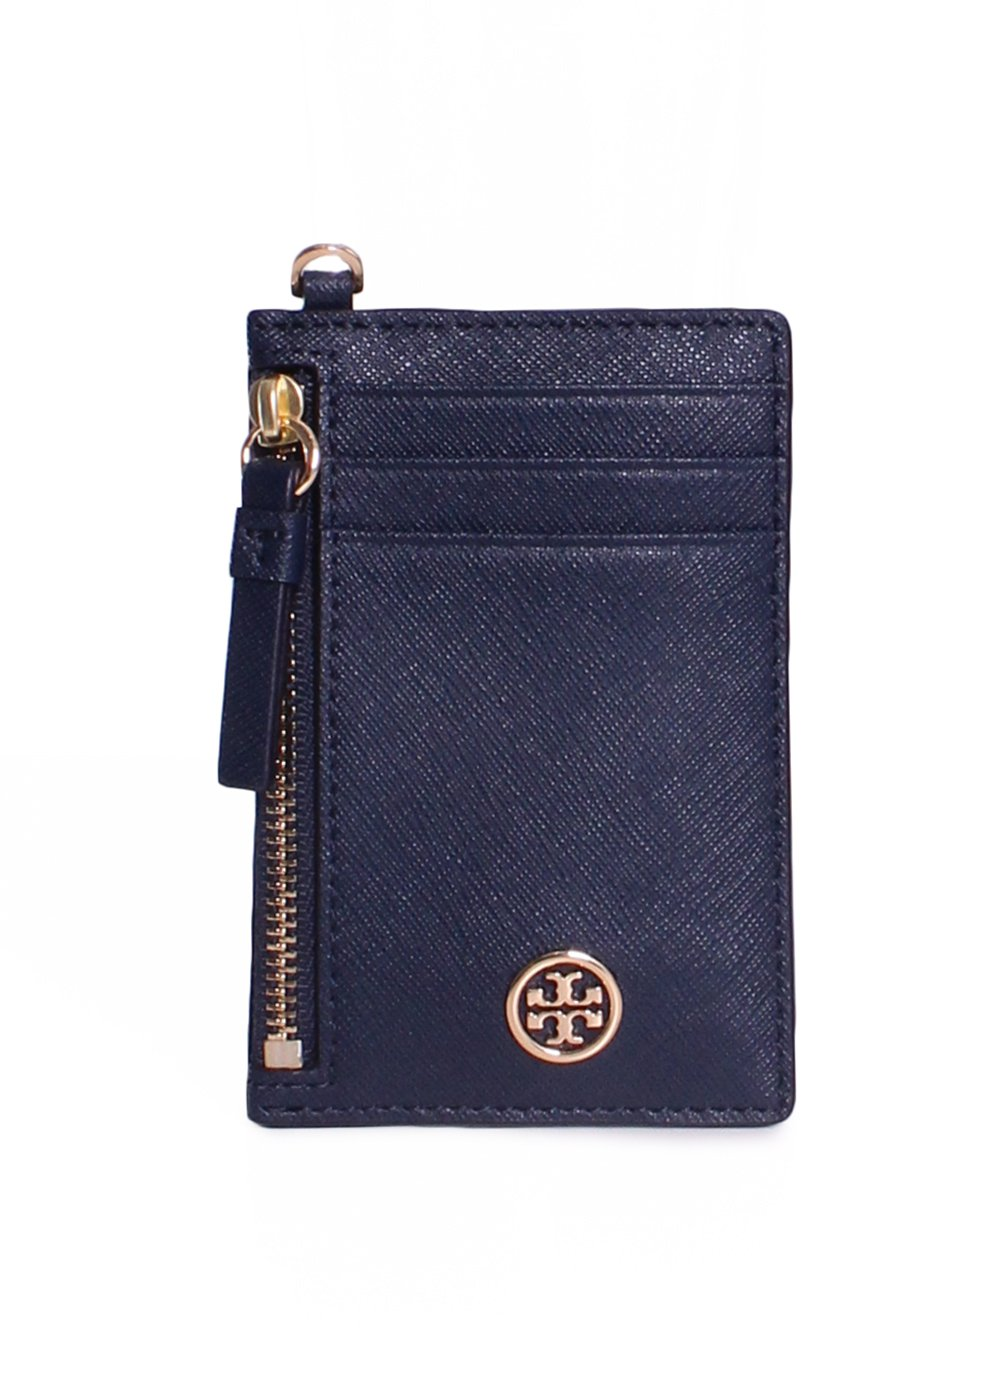 Tory Burch Robinson Lanyard Card Case Wallet 46409 (Royal Navy) by Tory Burch